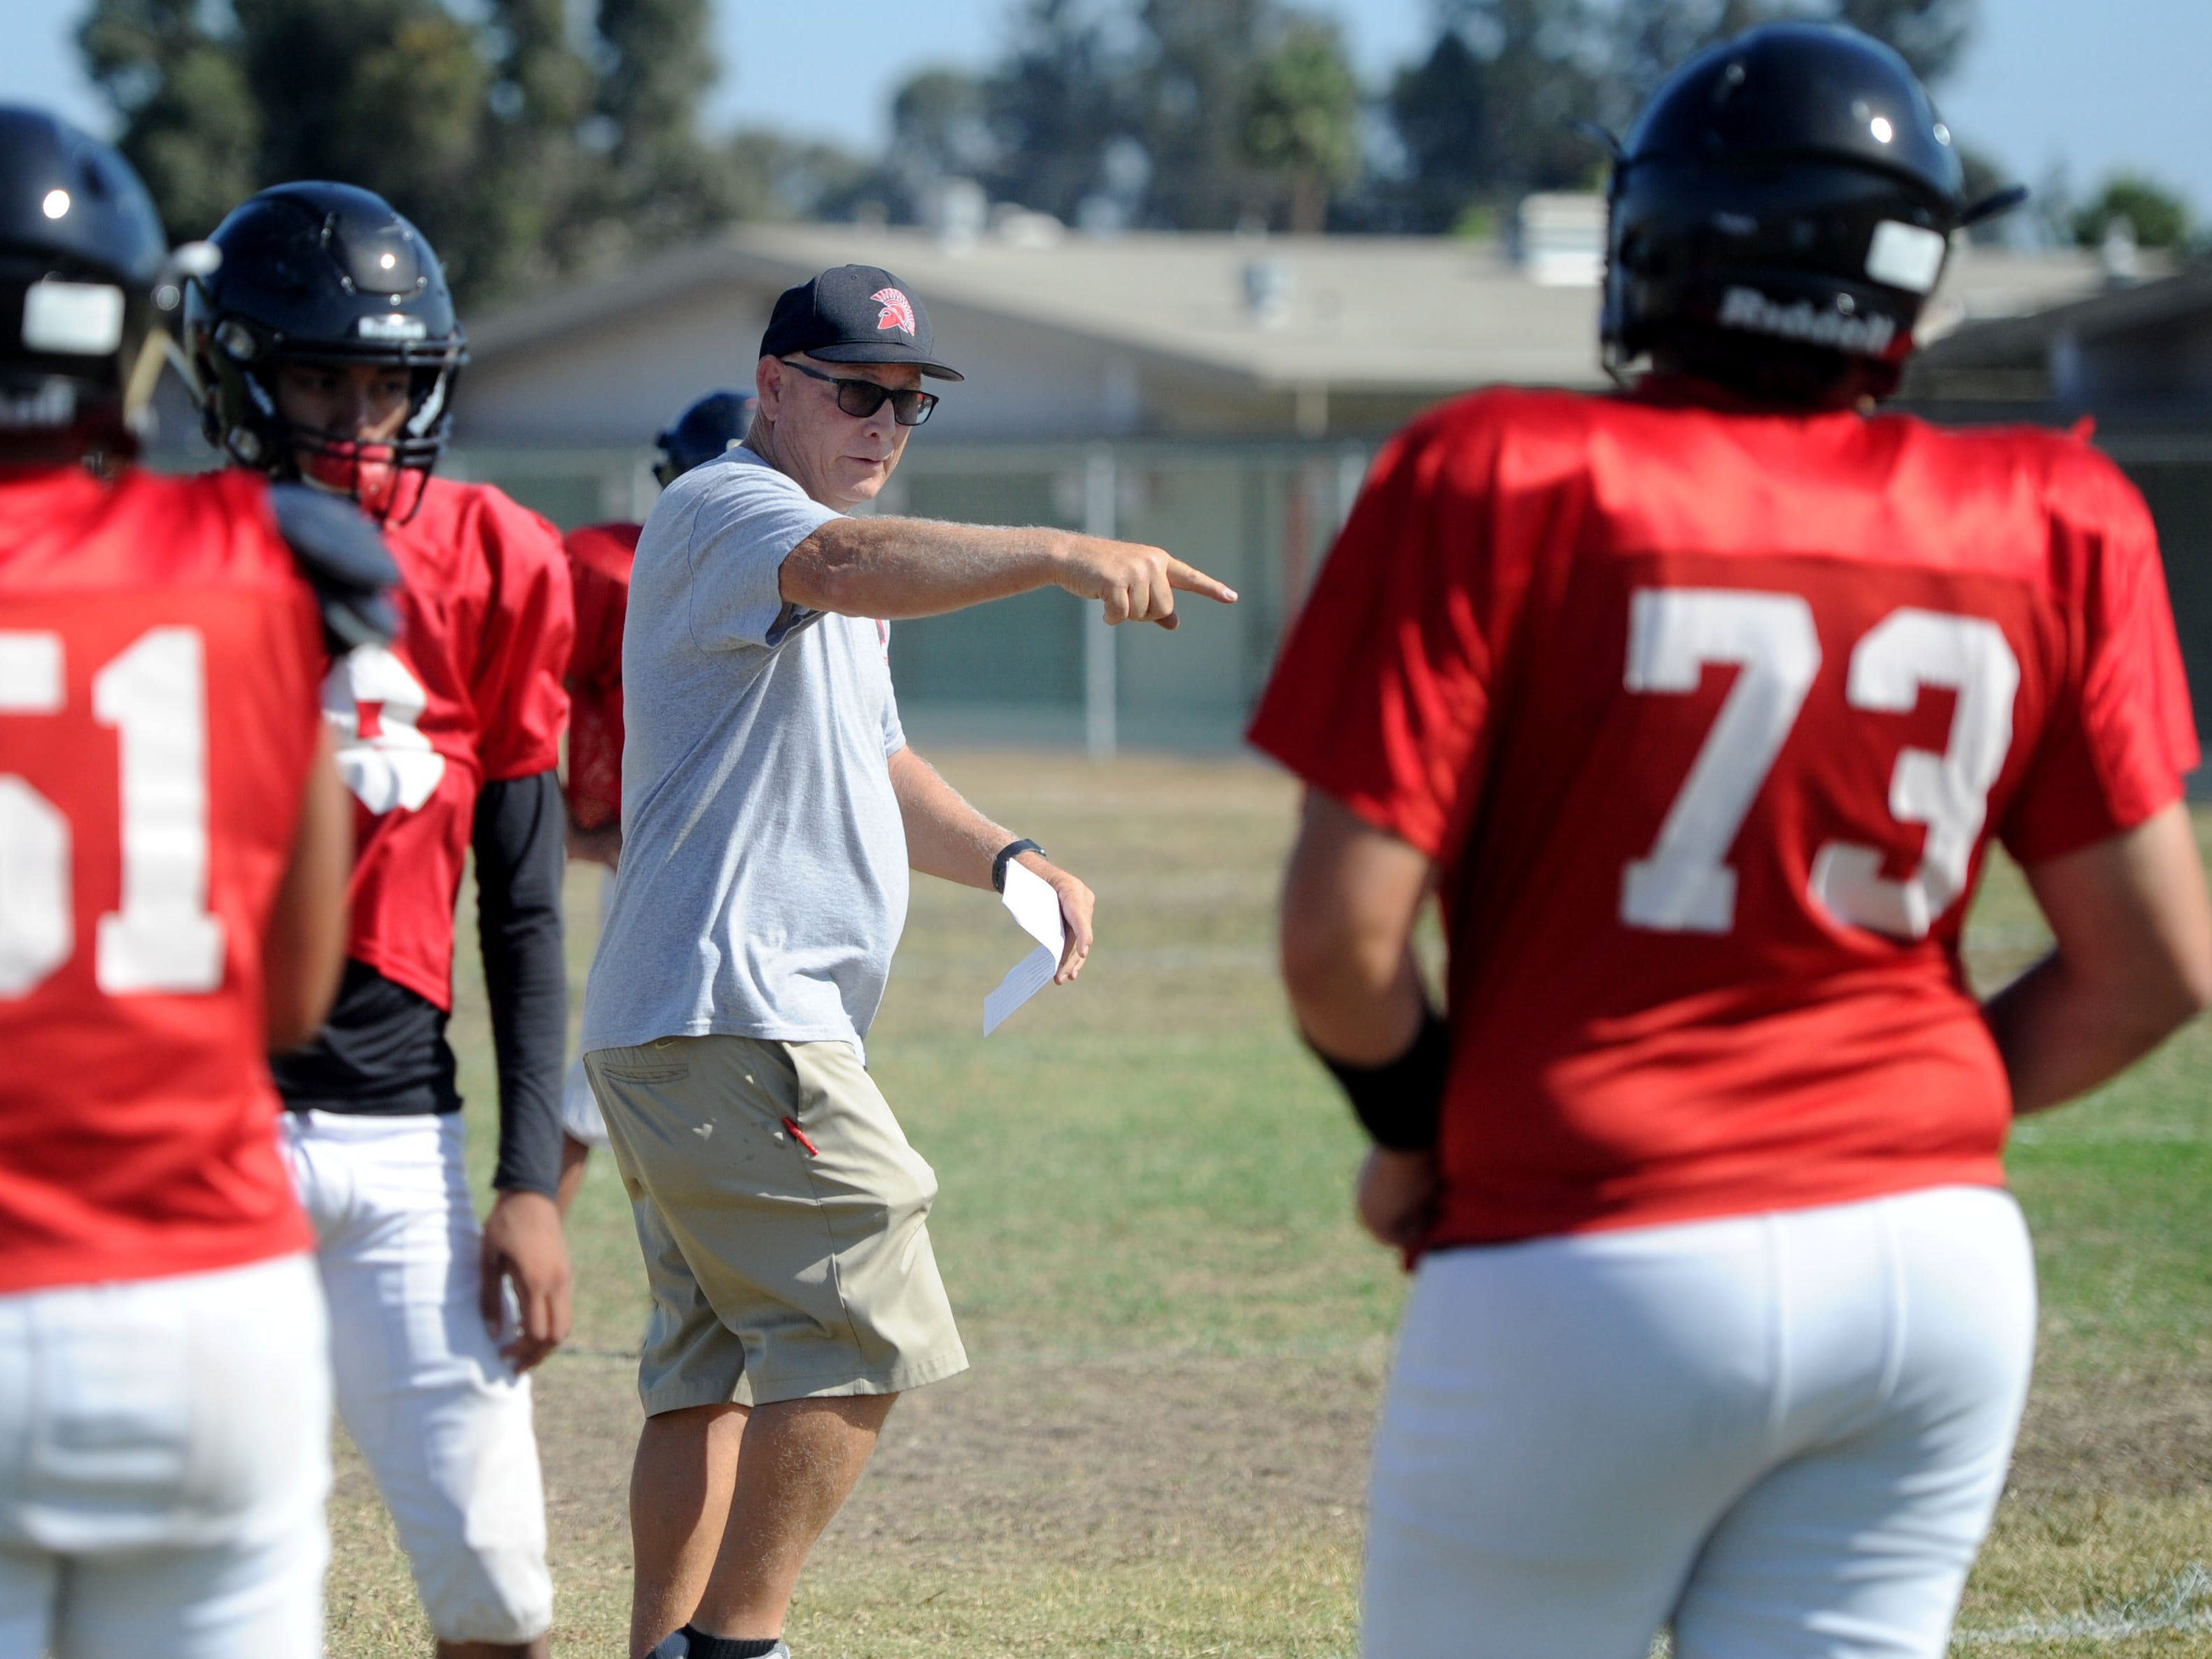 Rio Mesa High head coach Jim Bittner gives some pointers during Wednesday's practice. The Spartans open the 2018 season at rival Camarillo High on Friday night.